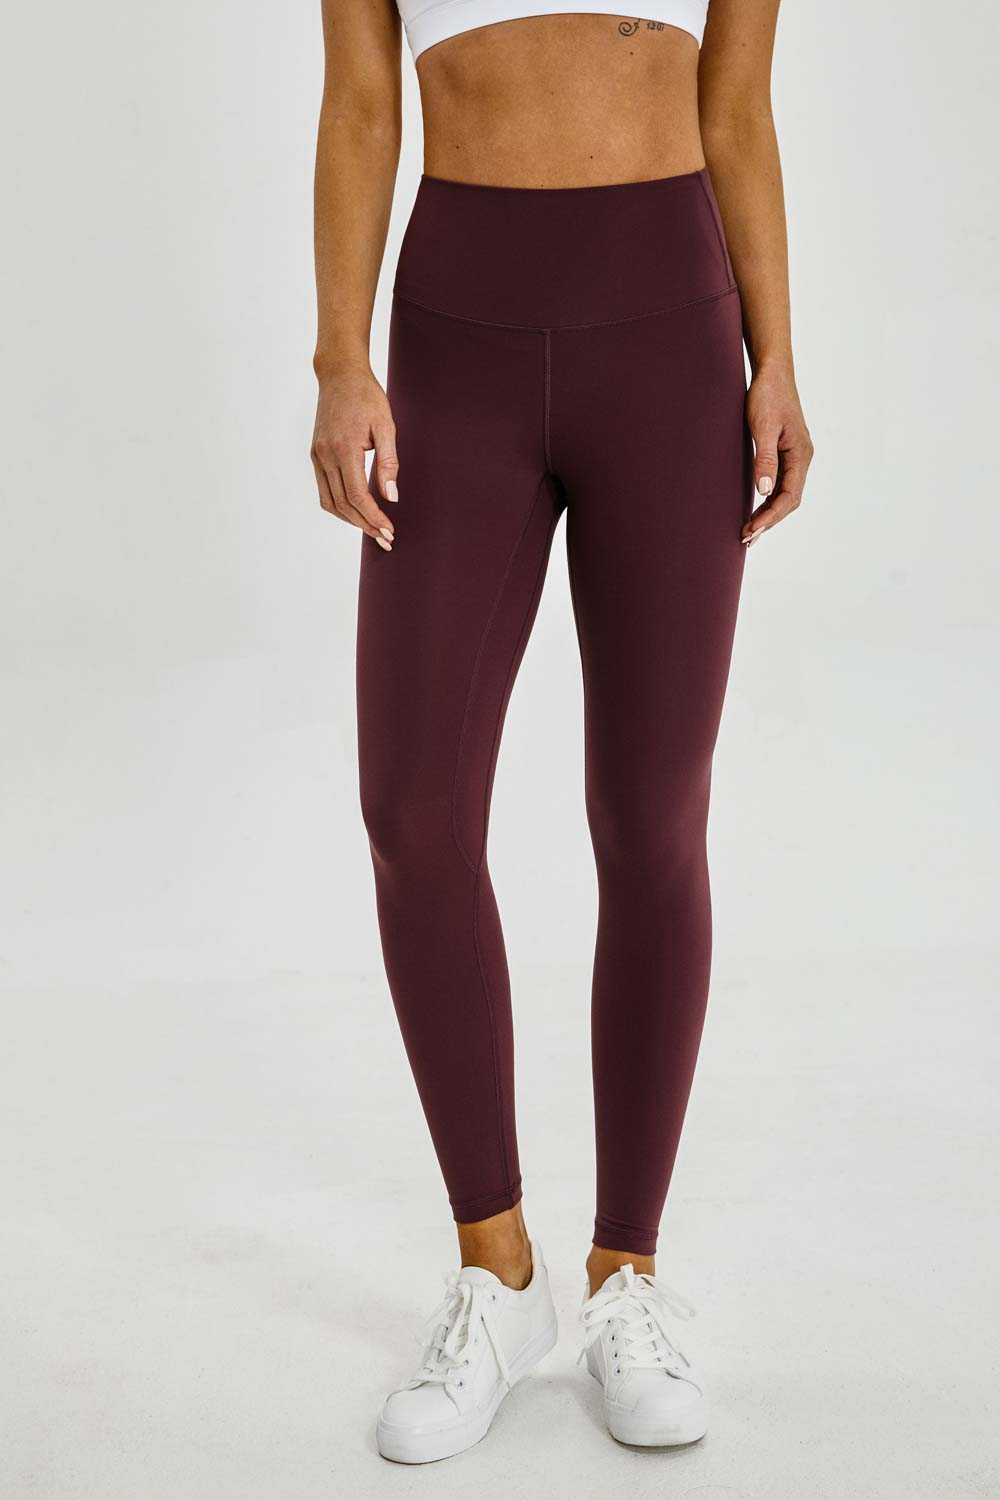 Enigma High Waist Legging